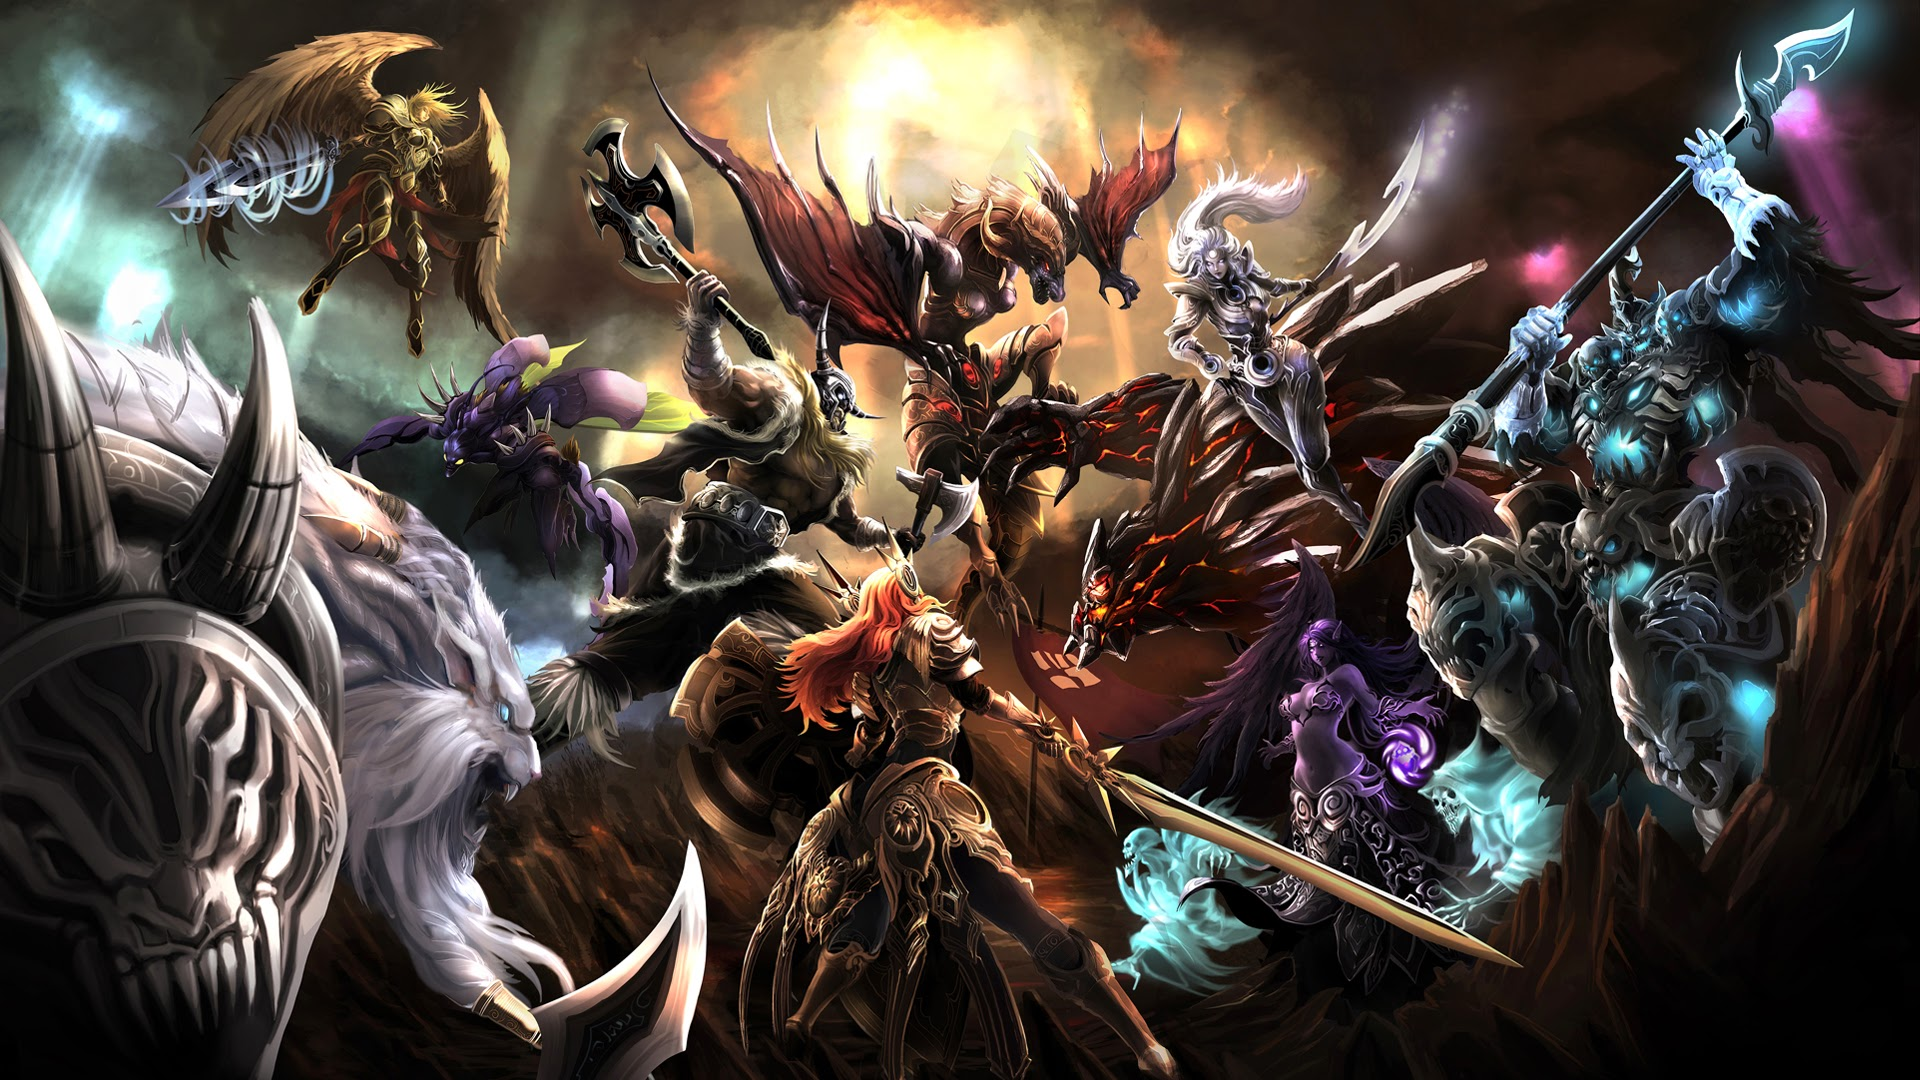 epic league of legends wallpapers